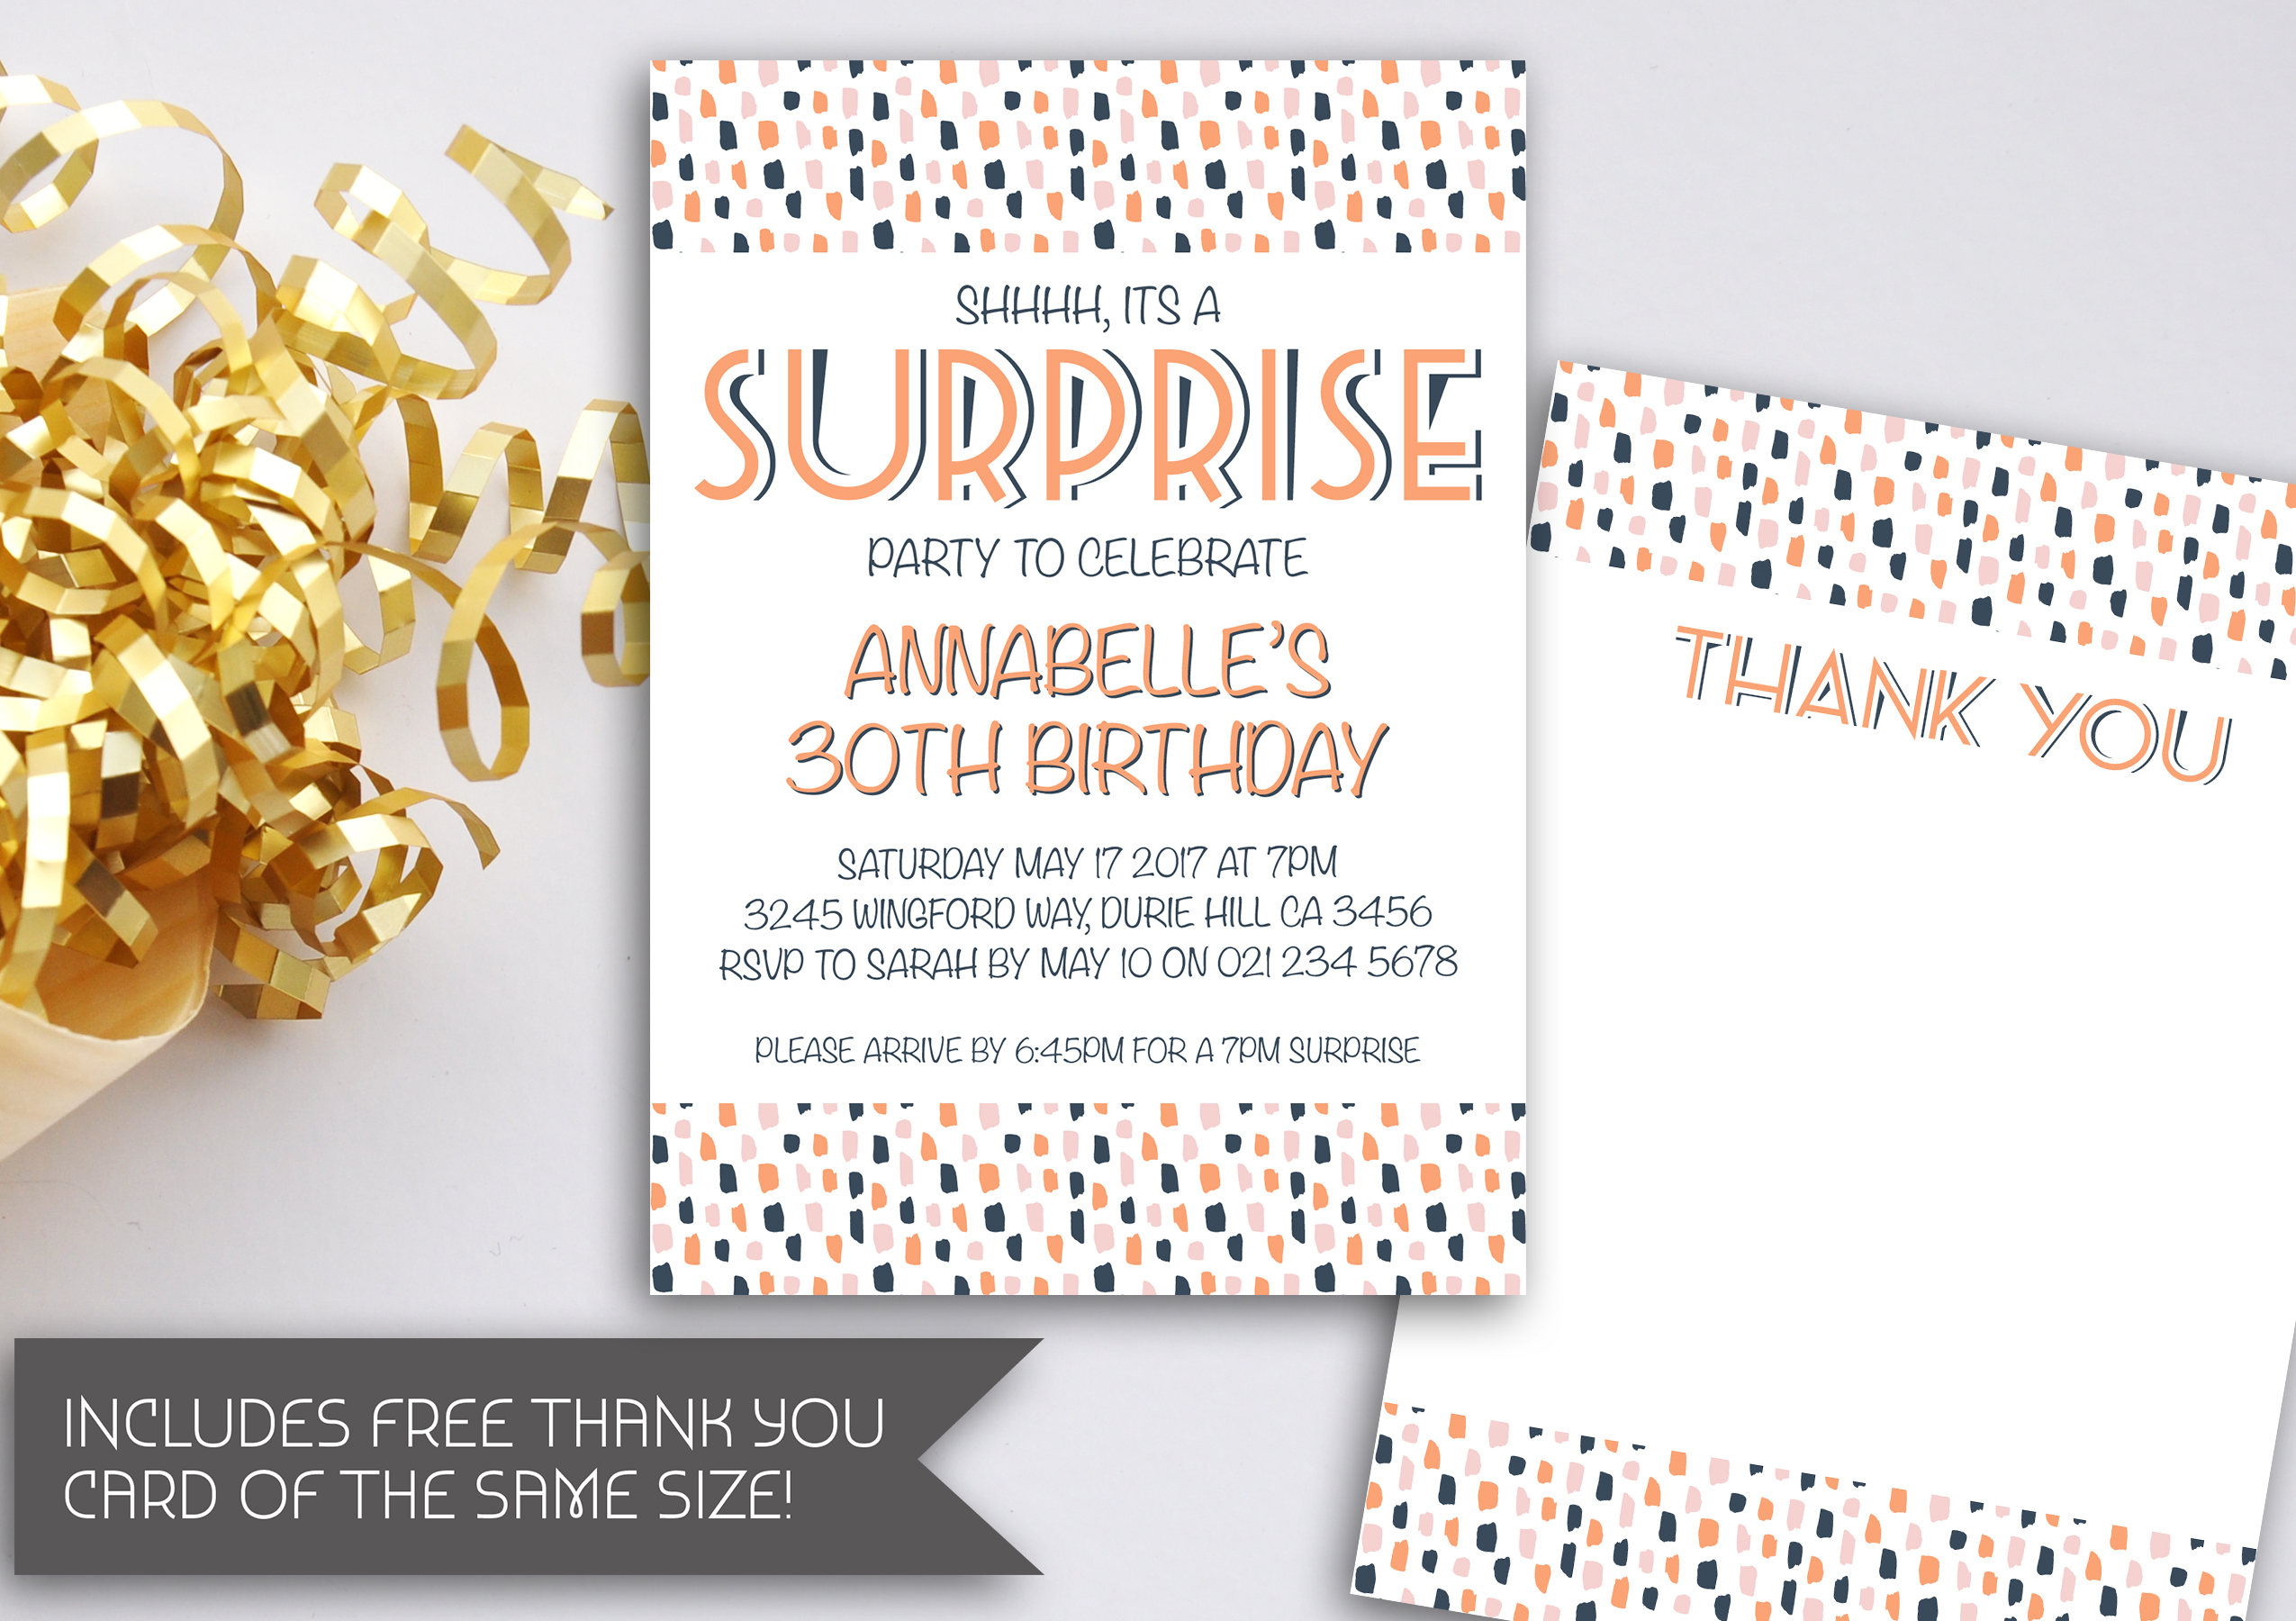 design my own birthday party invitation ; design-my-own-party-invitations-for-free-shhh-surprise-birthday-invitations-alanarasbach-com